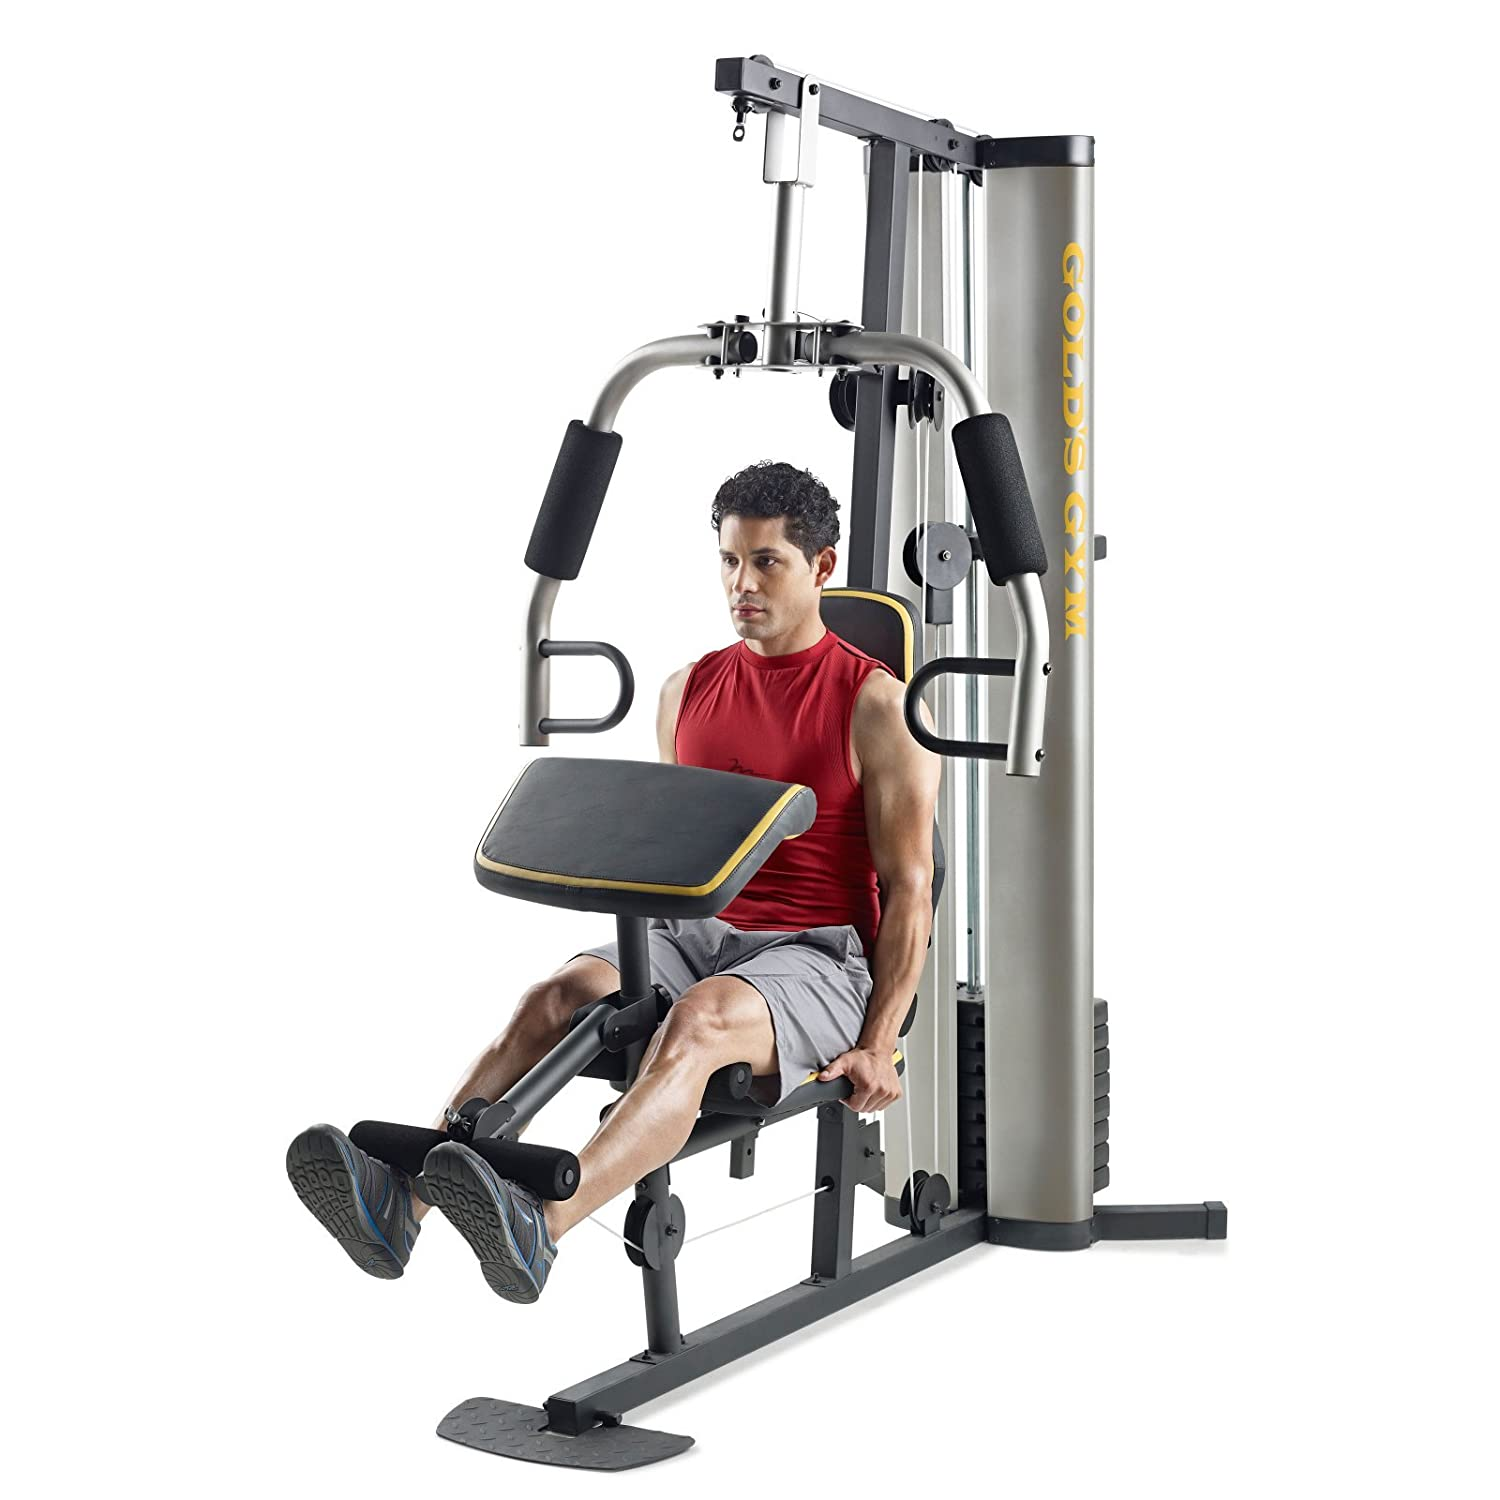 Amazon.com : Gold's Gym GGSY29013 XRS 55 Home Gym System : Sports & Outdoors